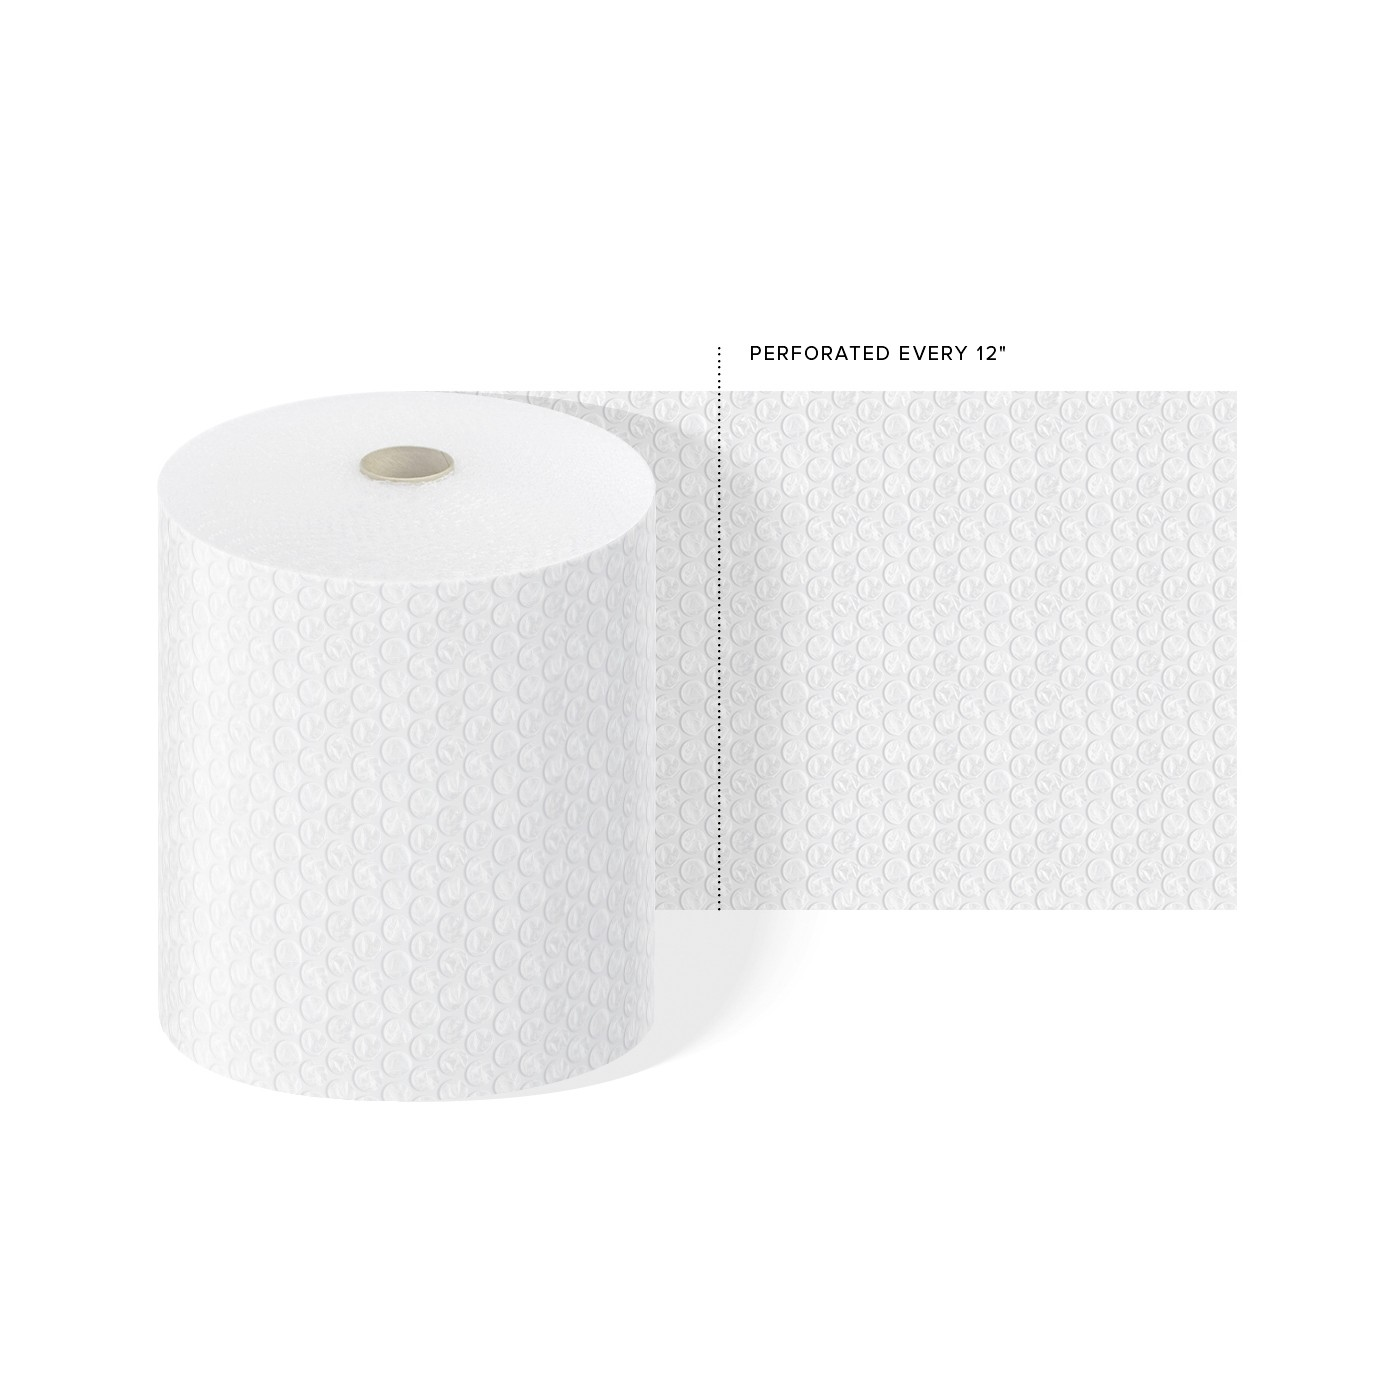 "TOTALPACK® 1/2"" x 12"" x 65' Perforated Every 12"", Air Bubble 1 Roll"